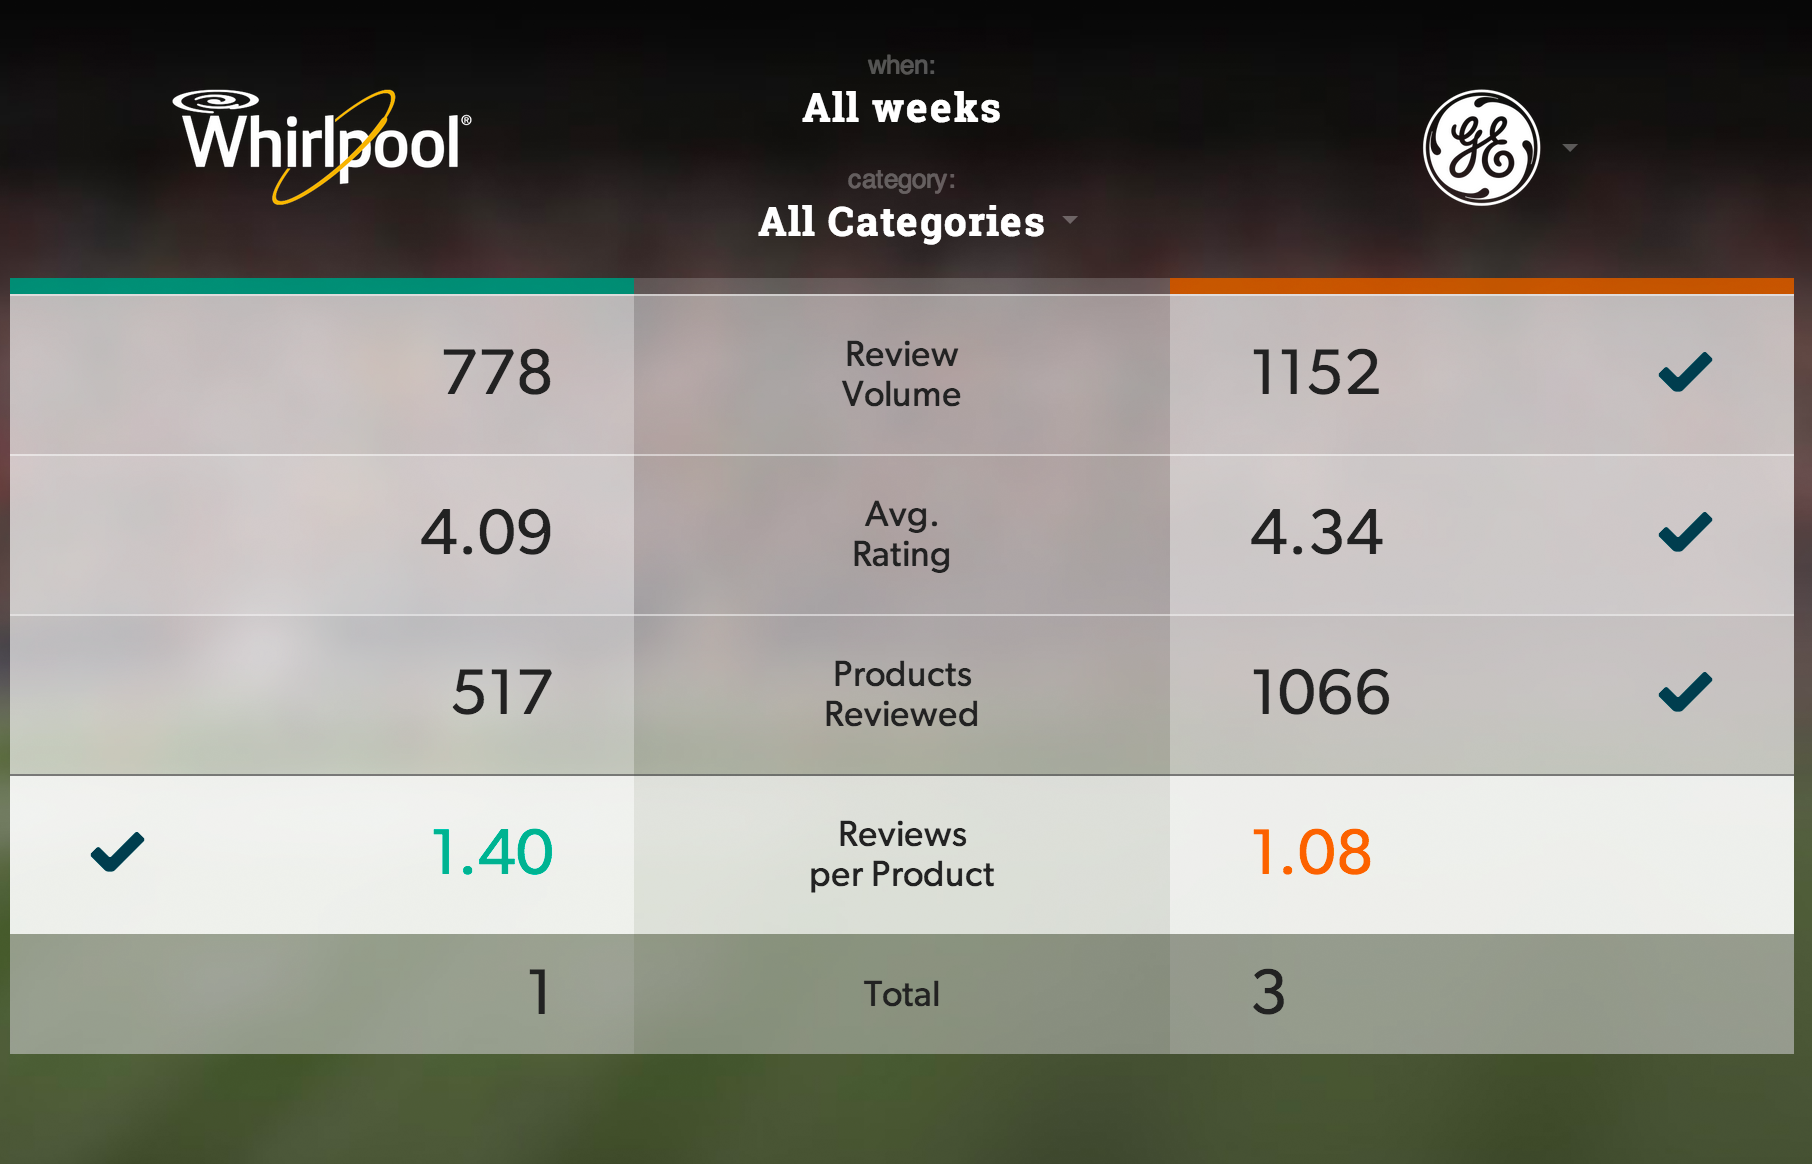 Detail of the table, showing Reviews per Product selected, which will filter the bar chart and alerts feed to be specific to just this one metric.